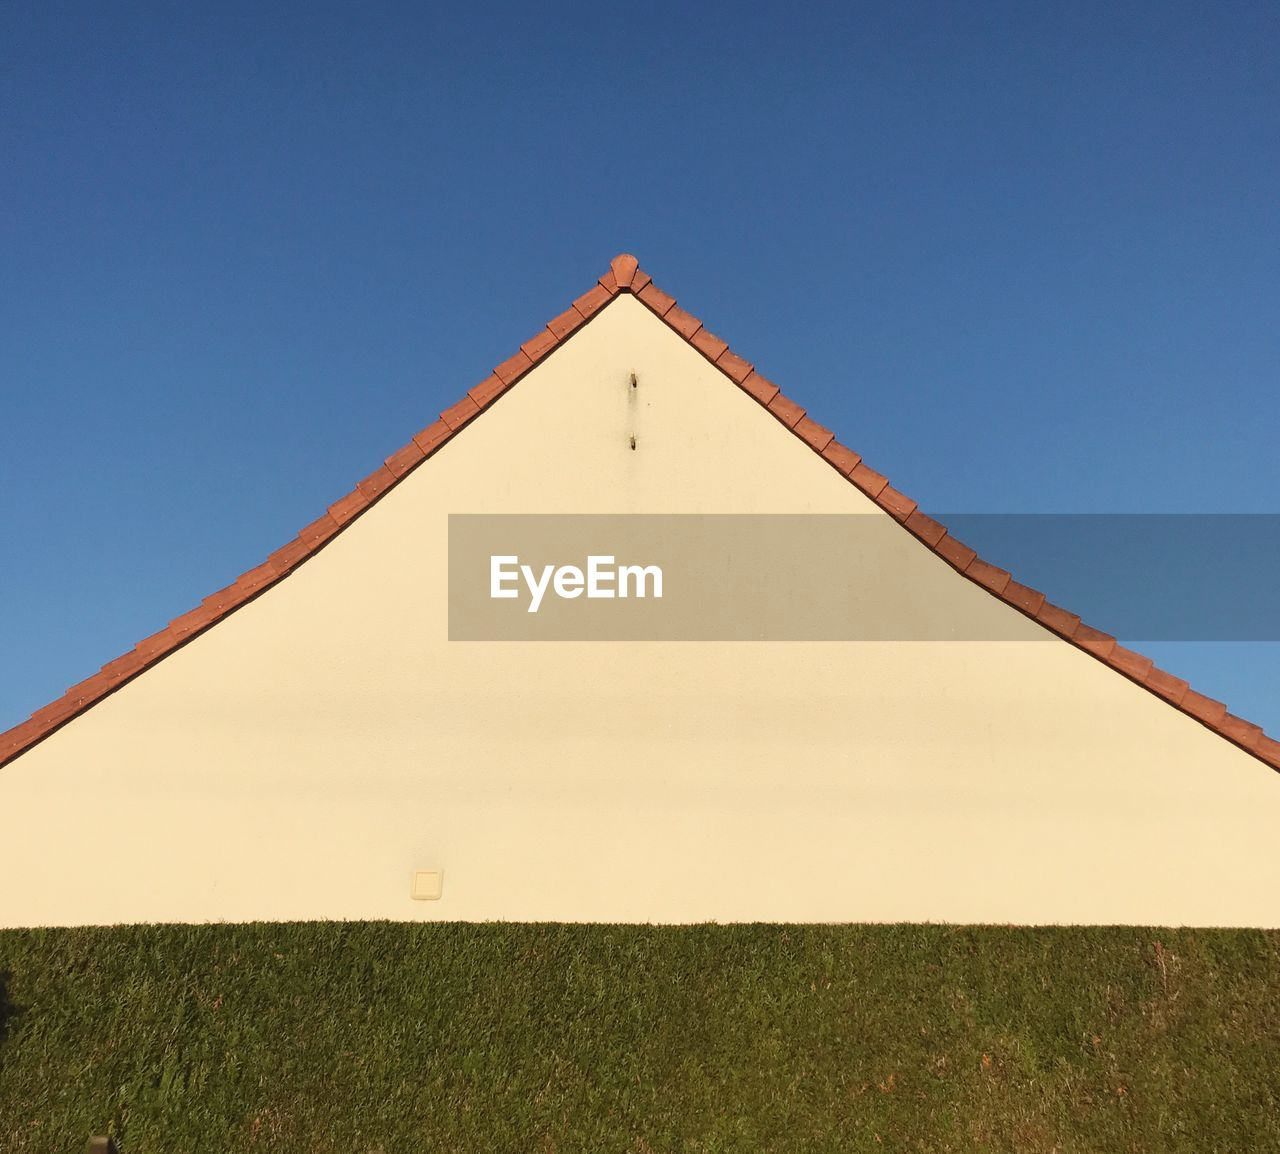 sky, clear sky, built structure, architecture, no people, nature, copy space, blue, building exterior, day, triangle shape, low angle view, land, plant, building, sunlight, field, outdoors, geometric shape, shape